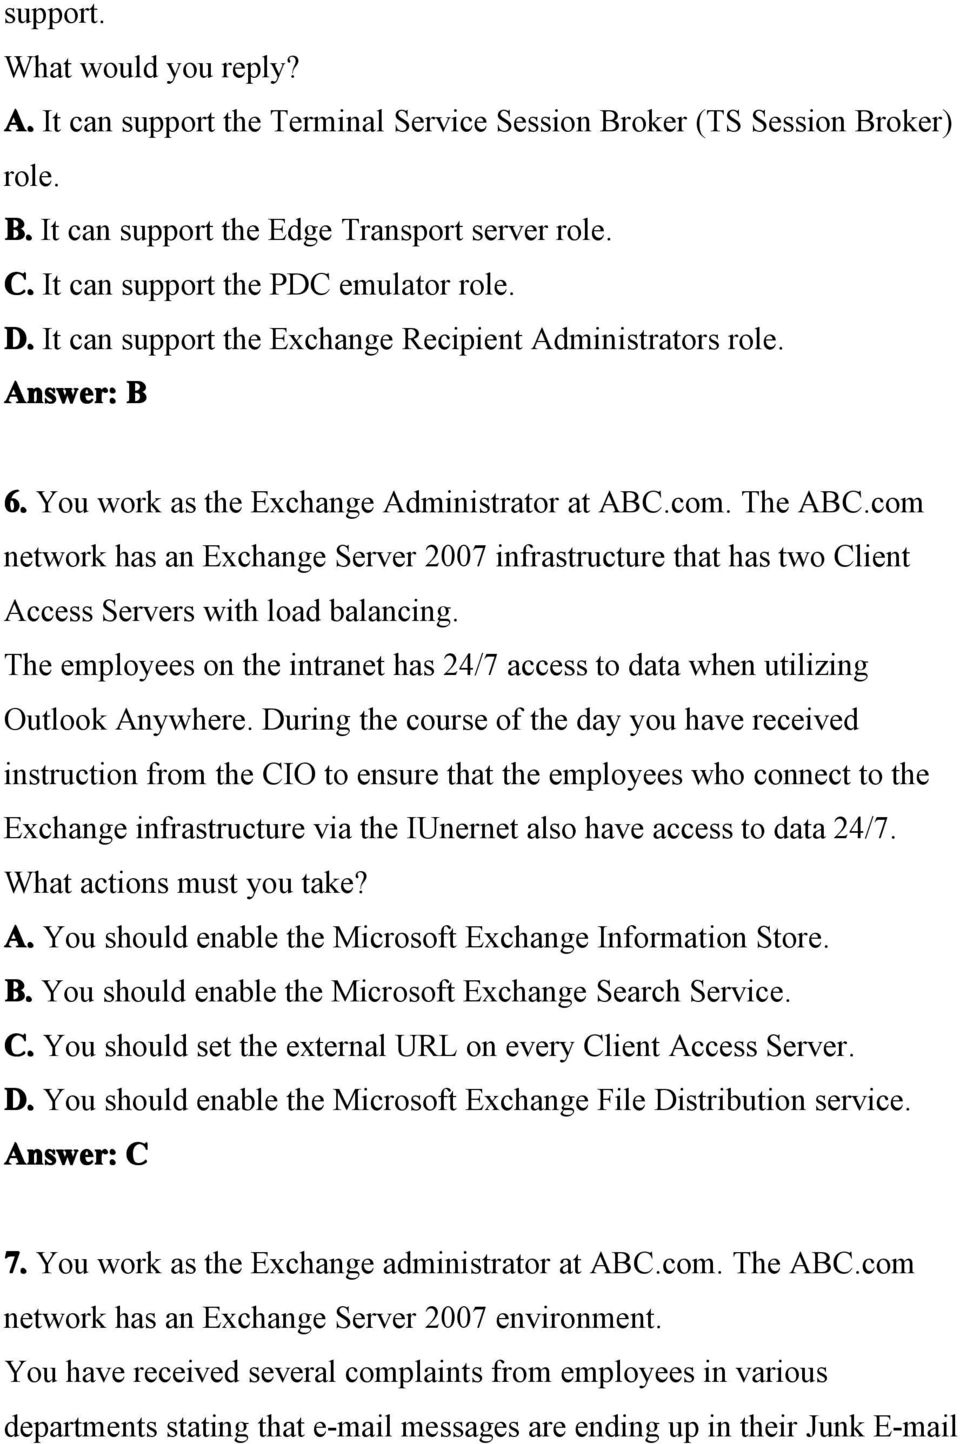 com network has an Exchange Server 2007 infrastructure that has two Client Access Servers with load balancing. The employees on the intranet has 24/7 access to data when utilizing Outlook Anywhere.